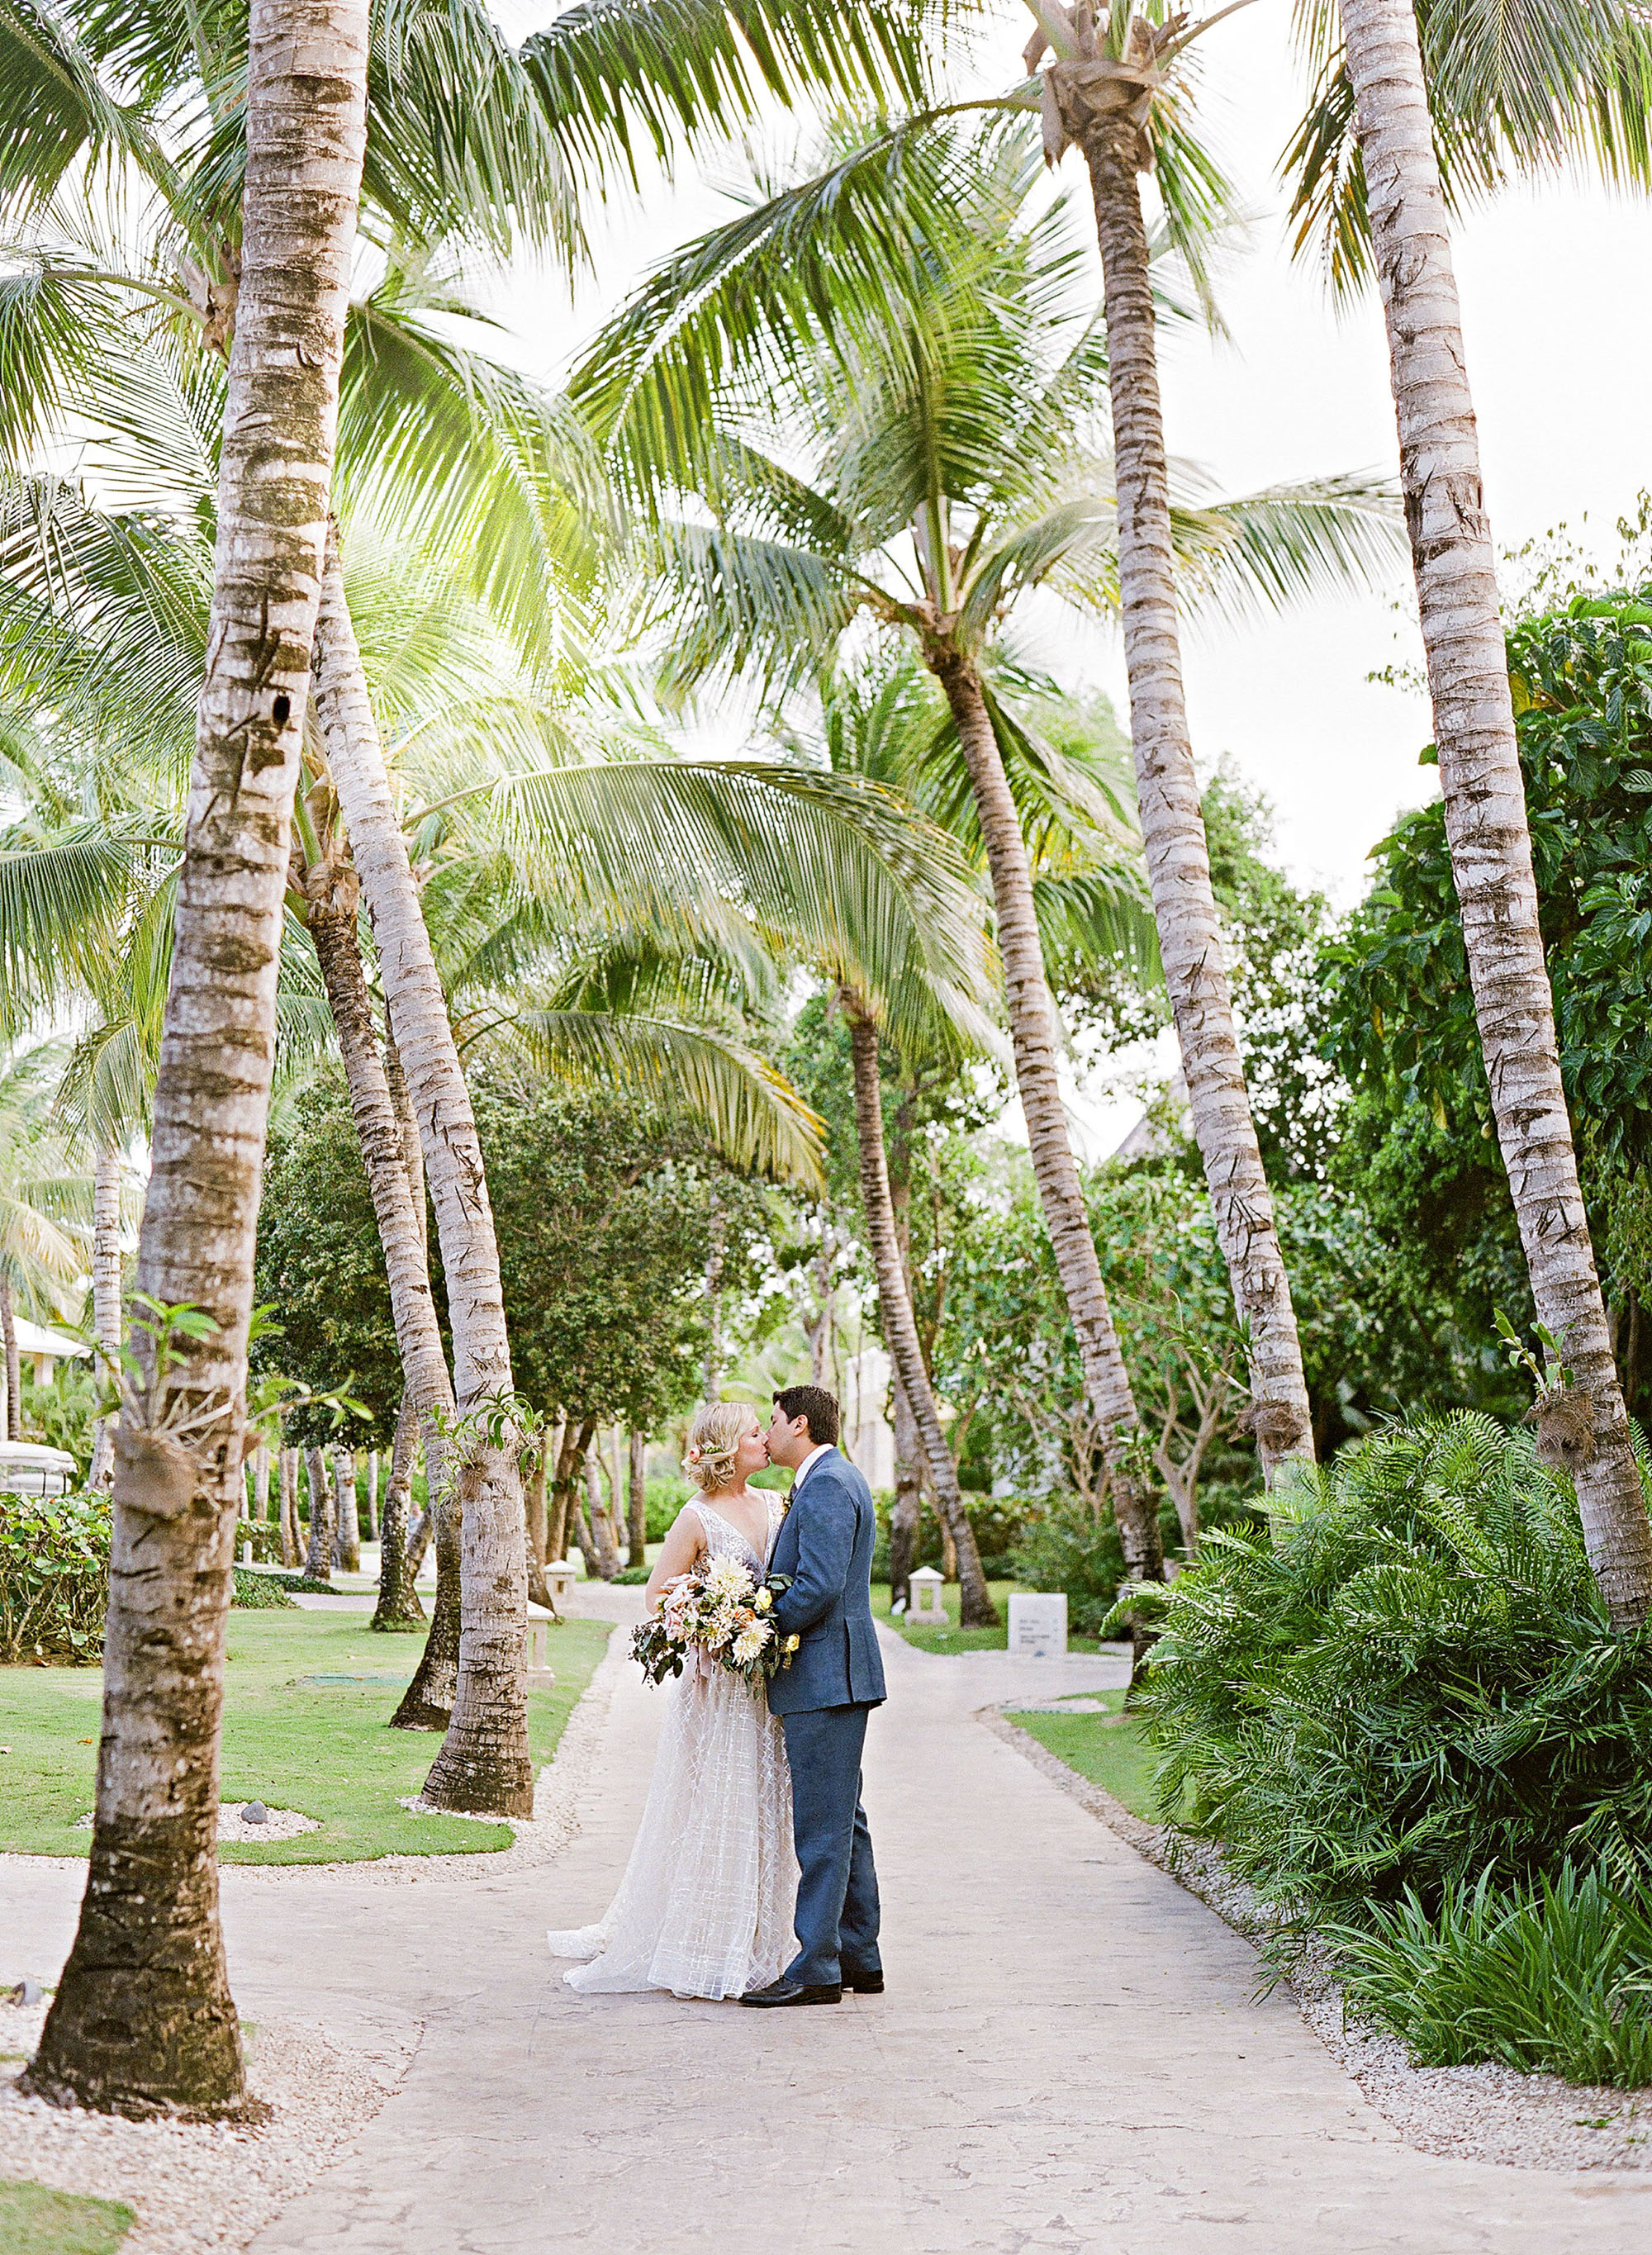 Planners Say These Are the Destination Wedding Locations They're Loving Right Now